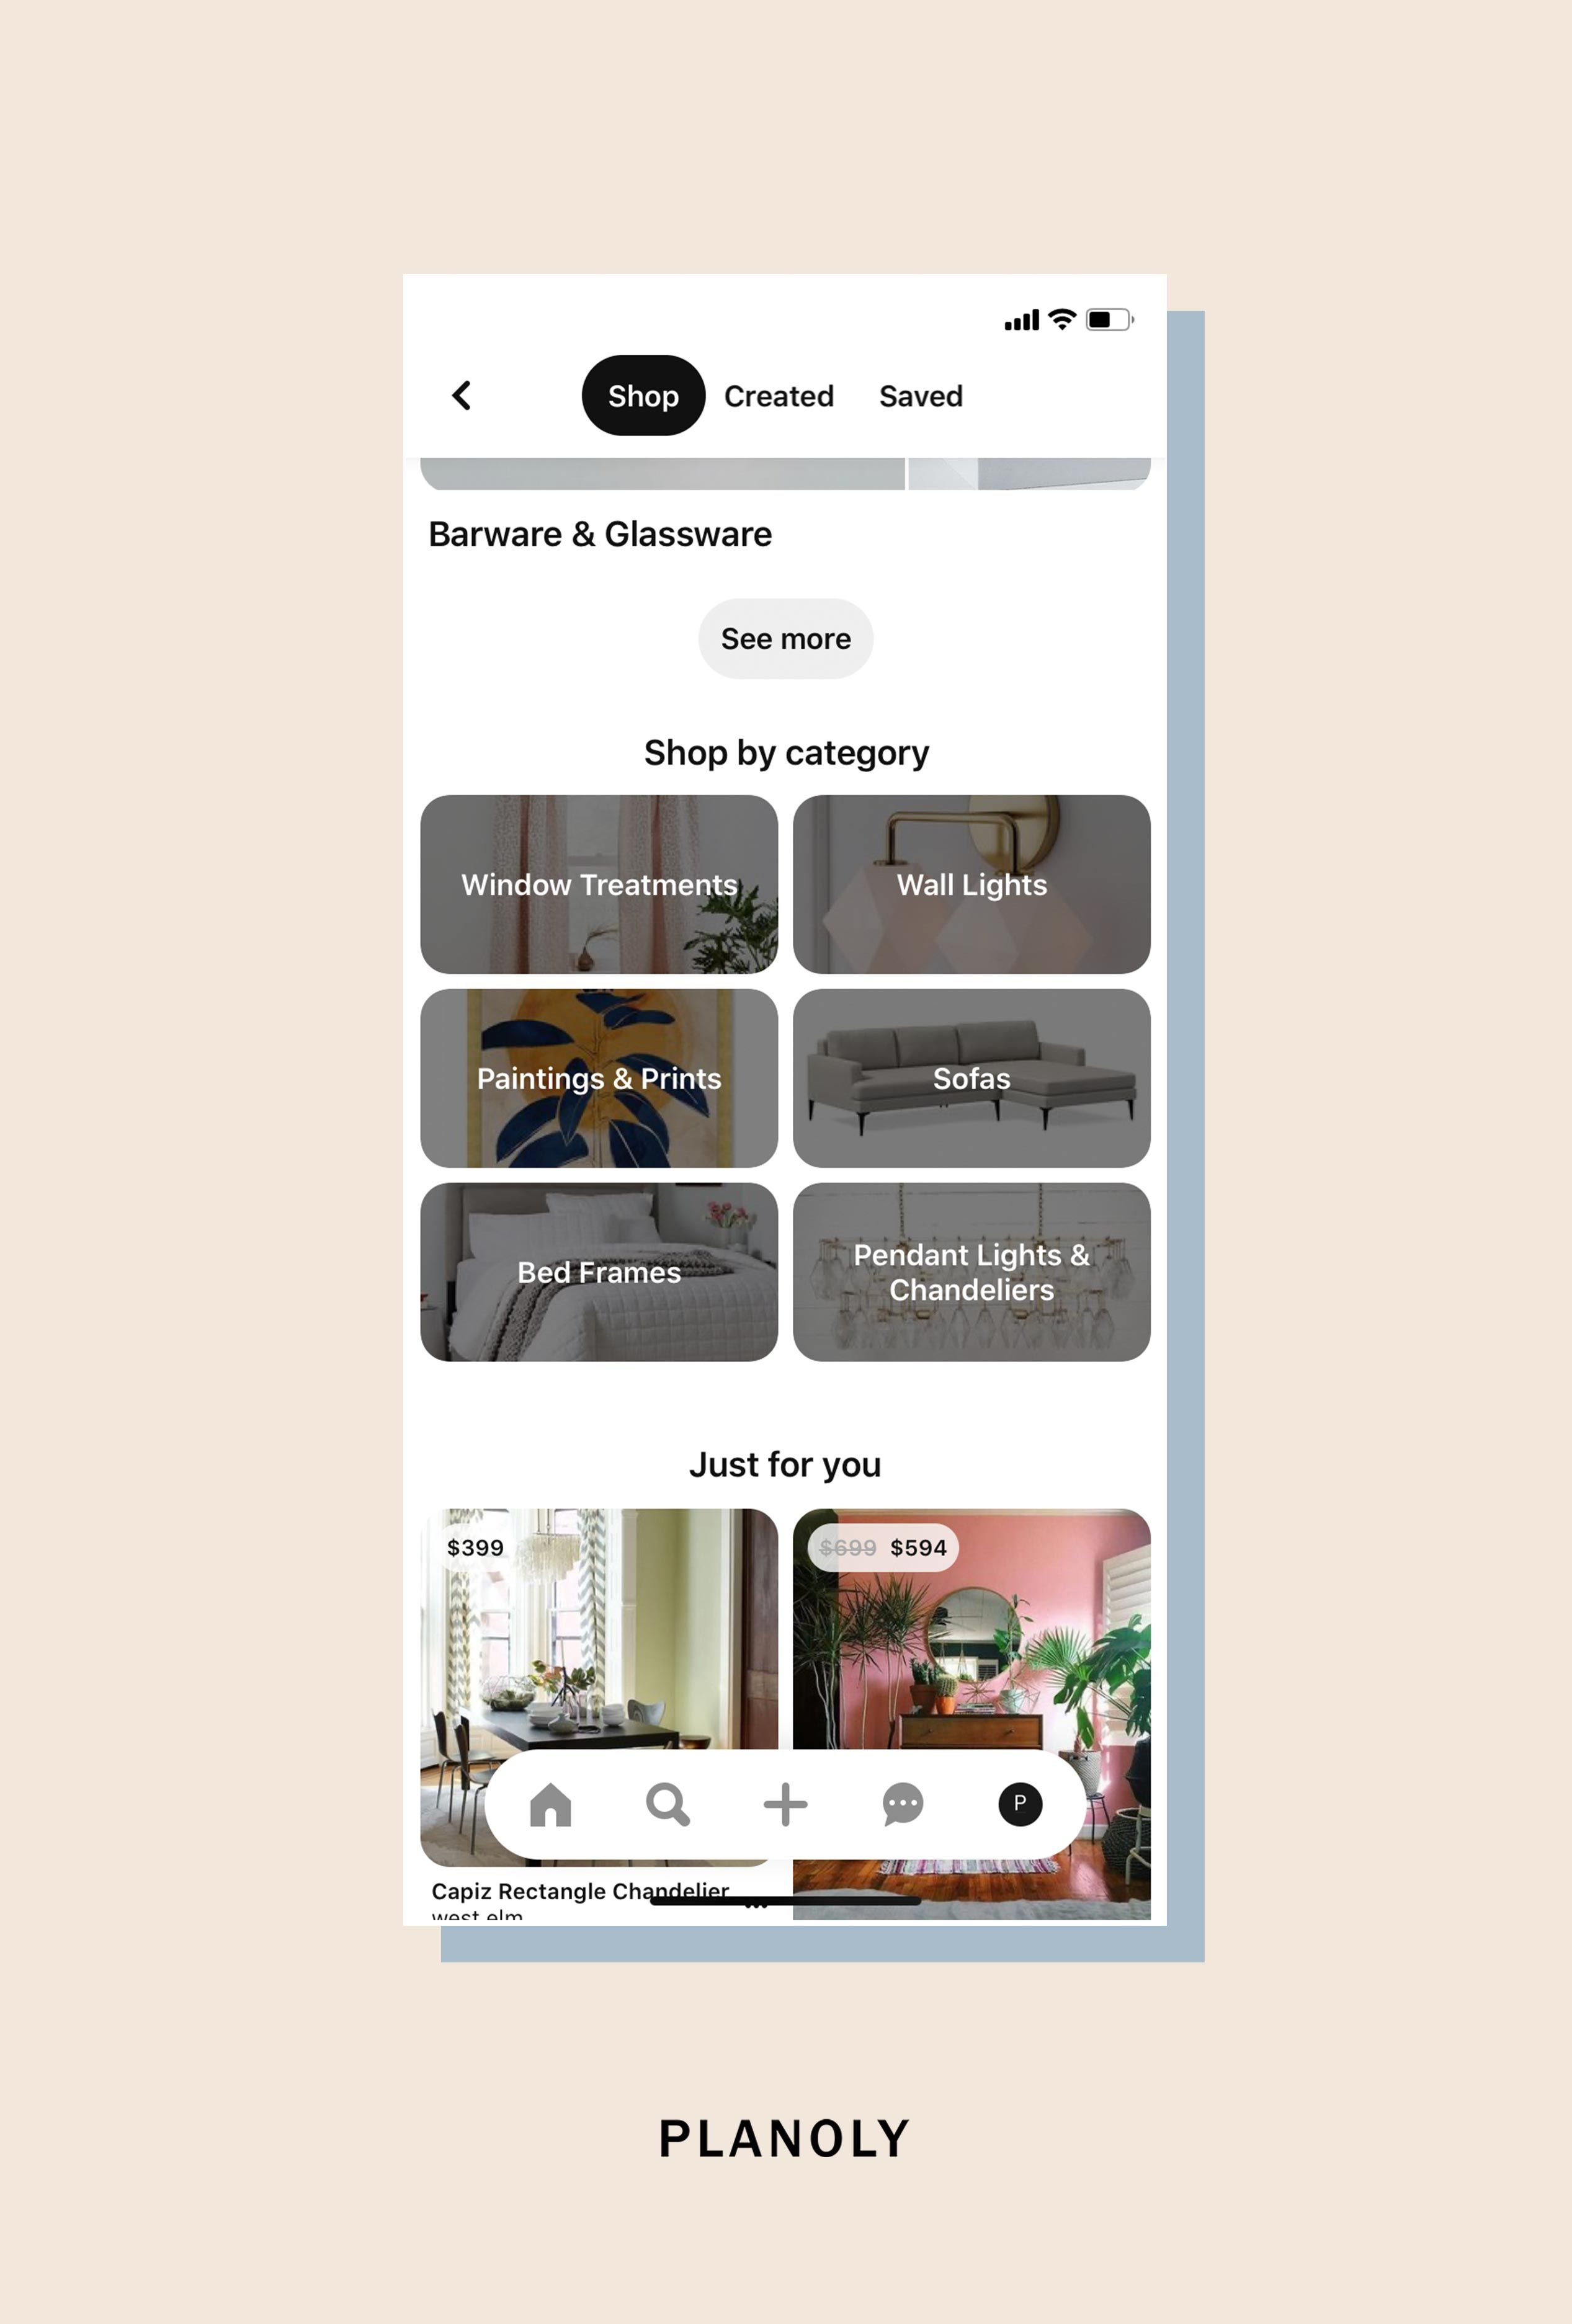 PLANOLY-Blog-Post-How-Retailers-Can-Use-Pinterest-Shops-Feature-Image-2